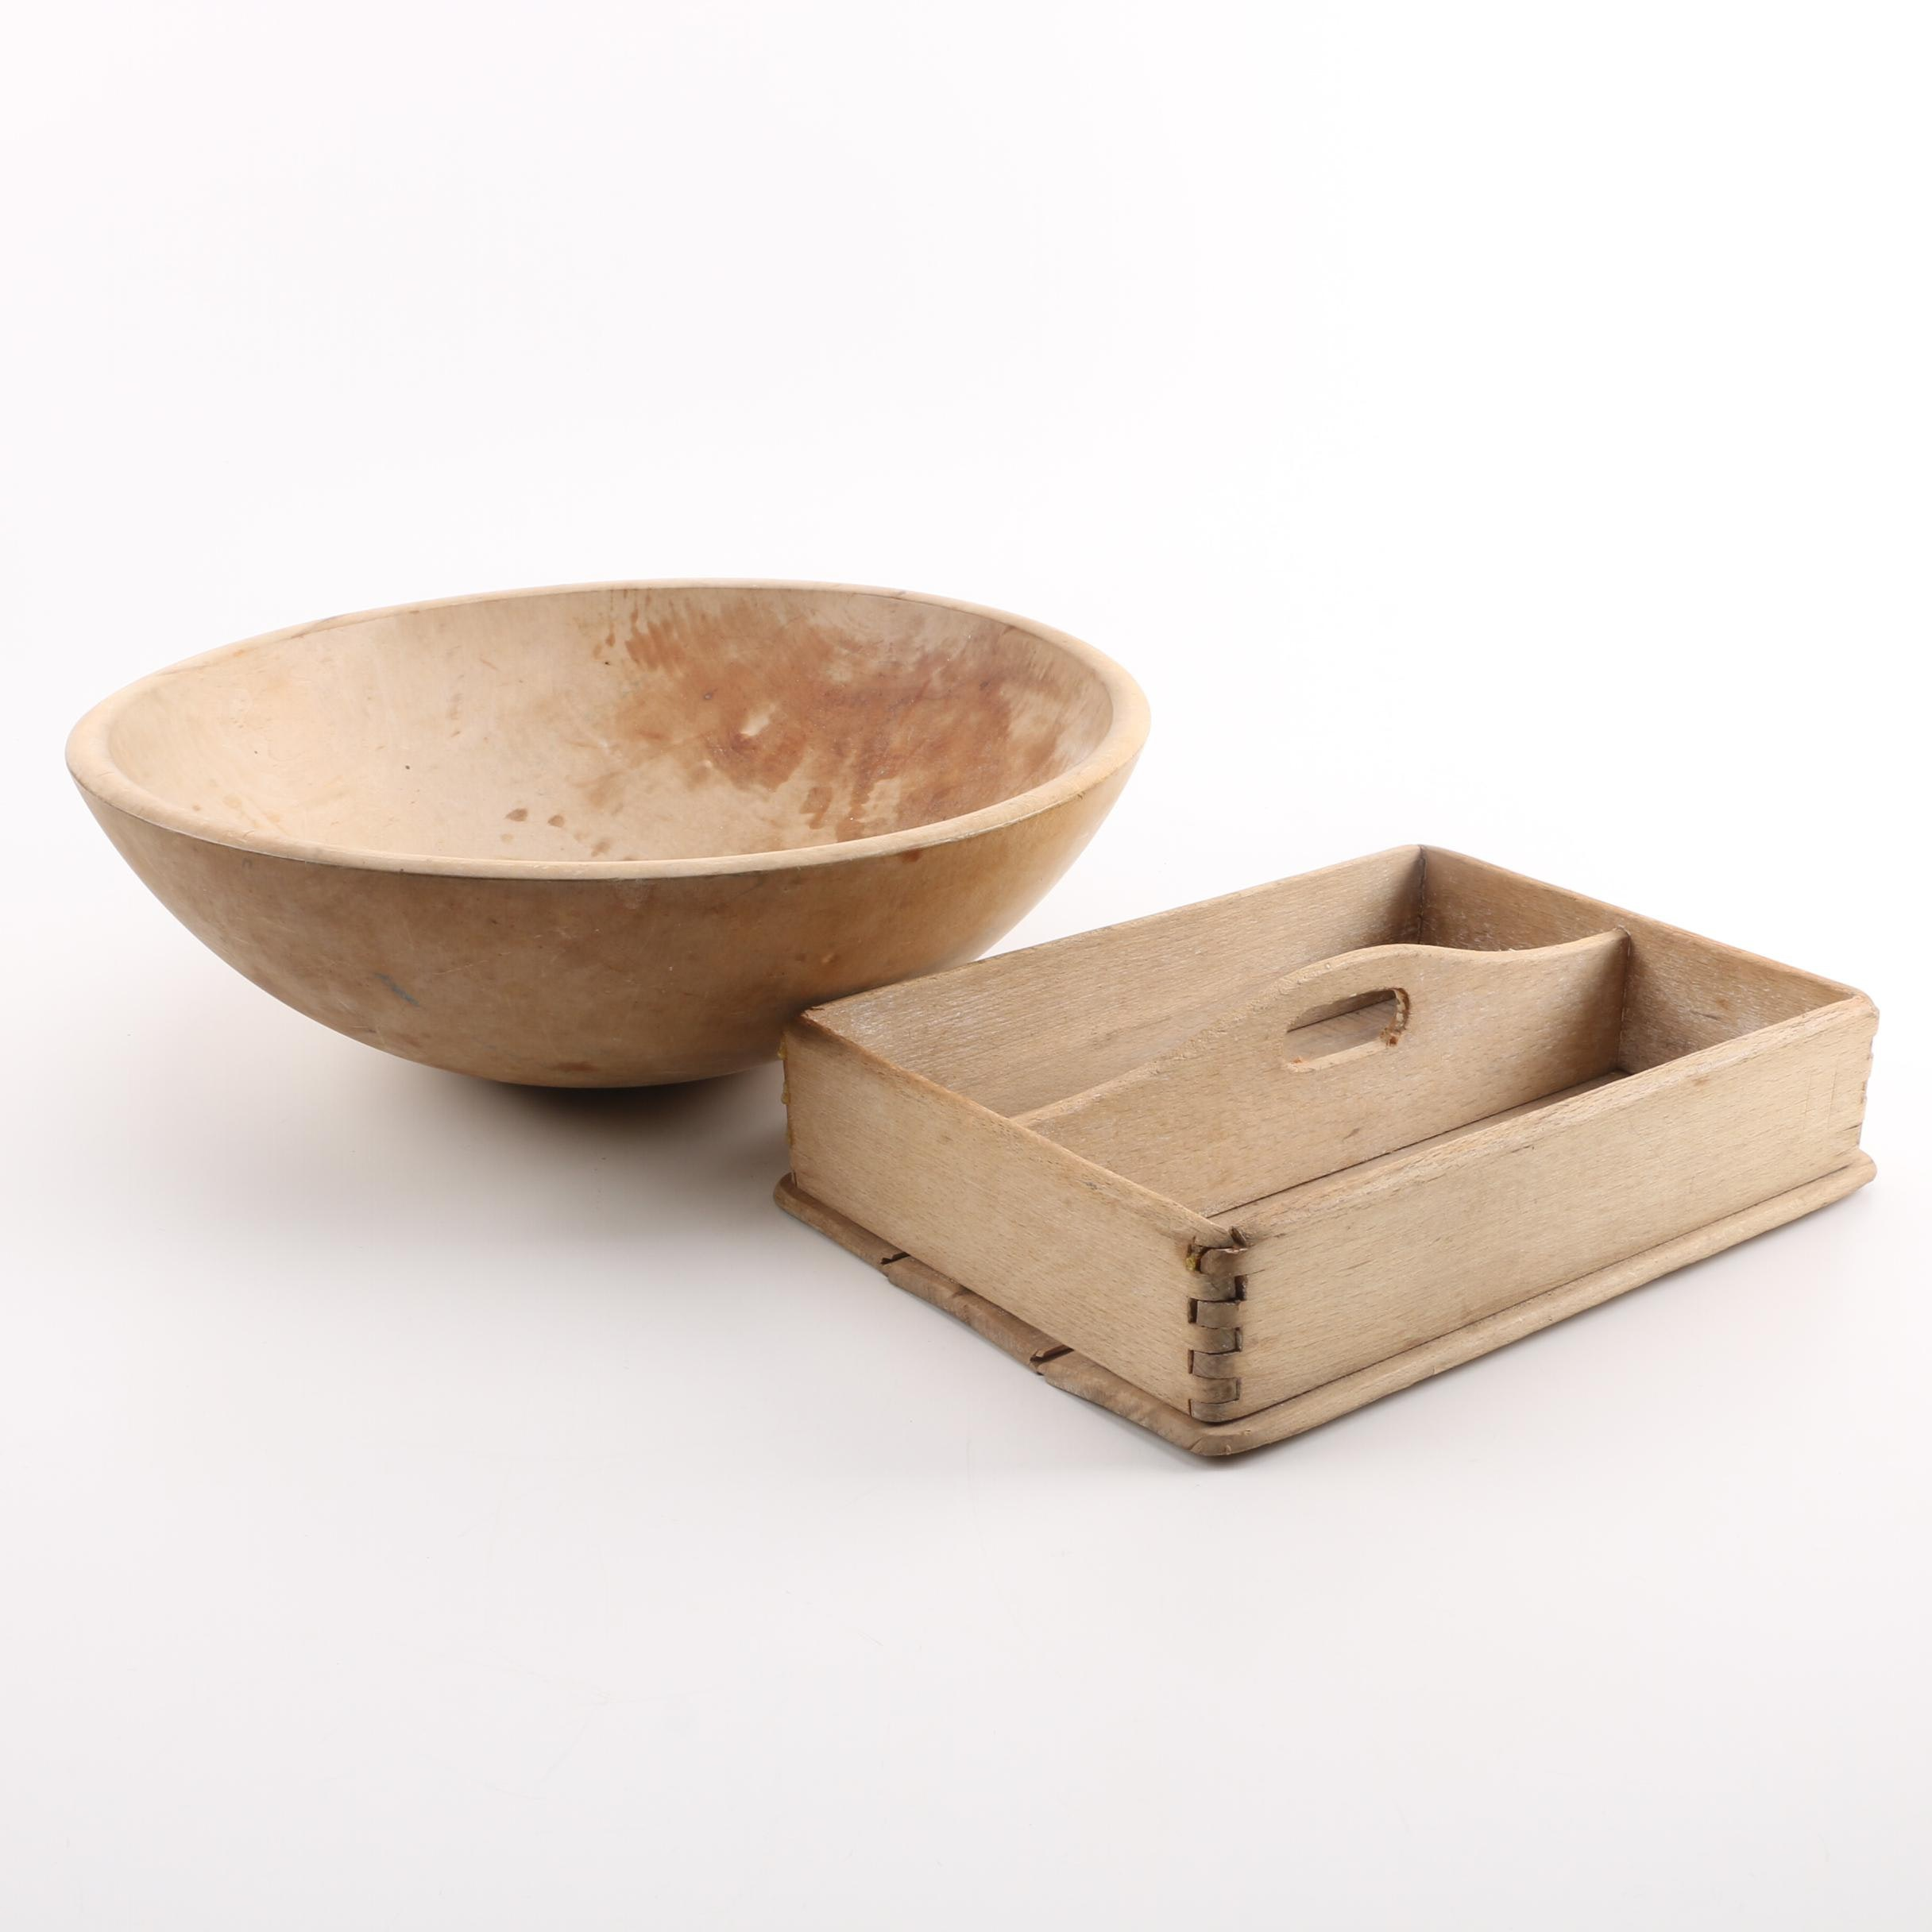 Munising Dough Bowl and Wooden Serving Tray with Central Carrying Handle